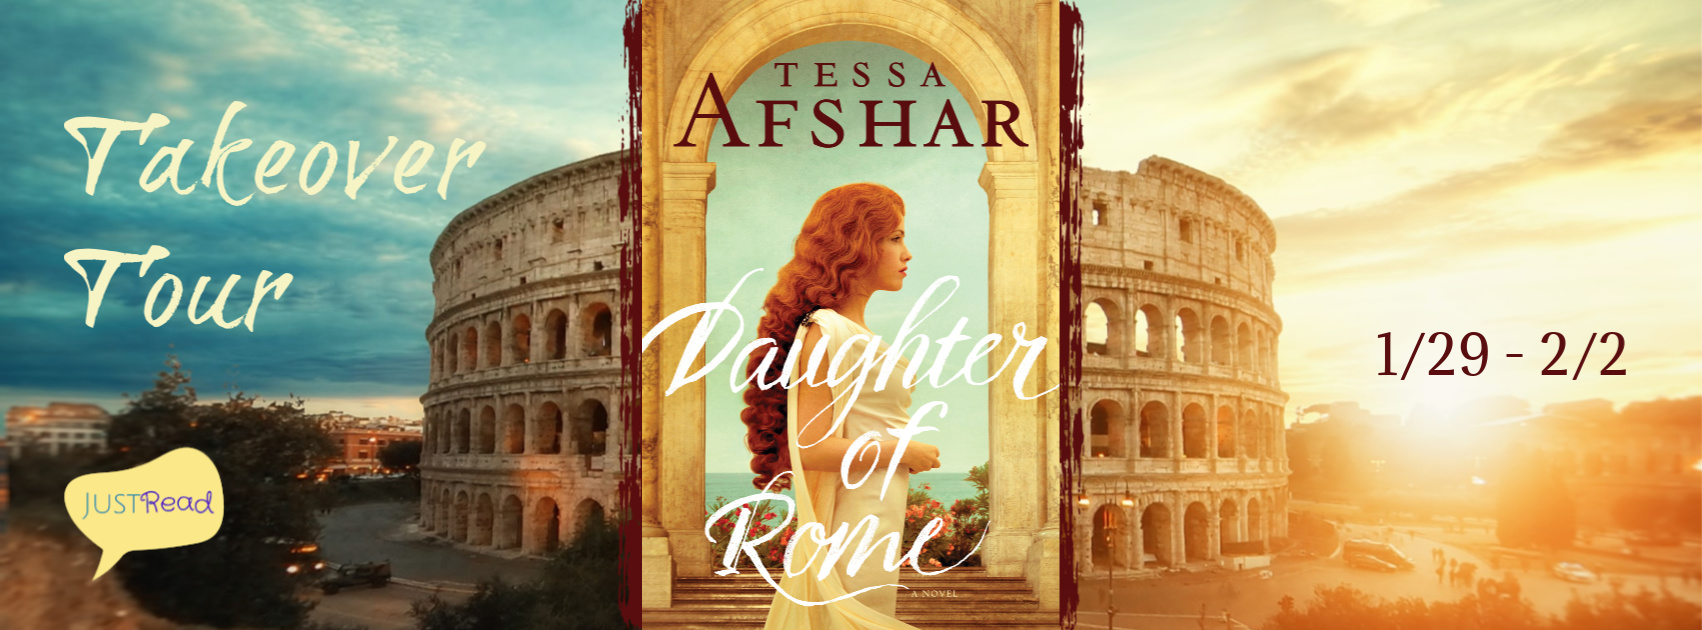 Welcome to the Daughter of Rome Takeover Tour & Giveaway!